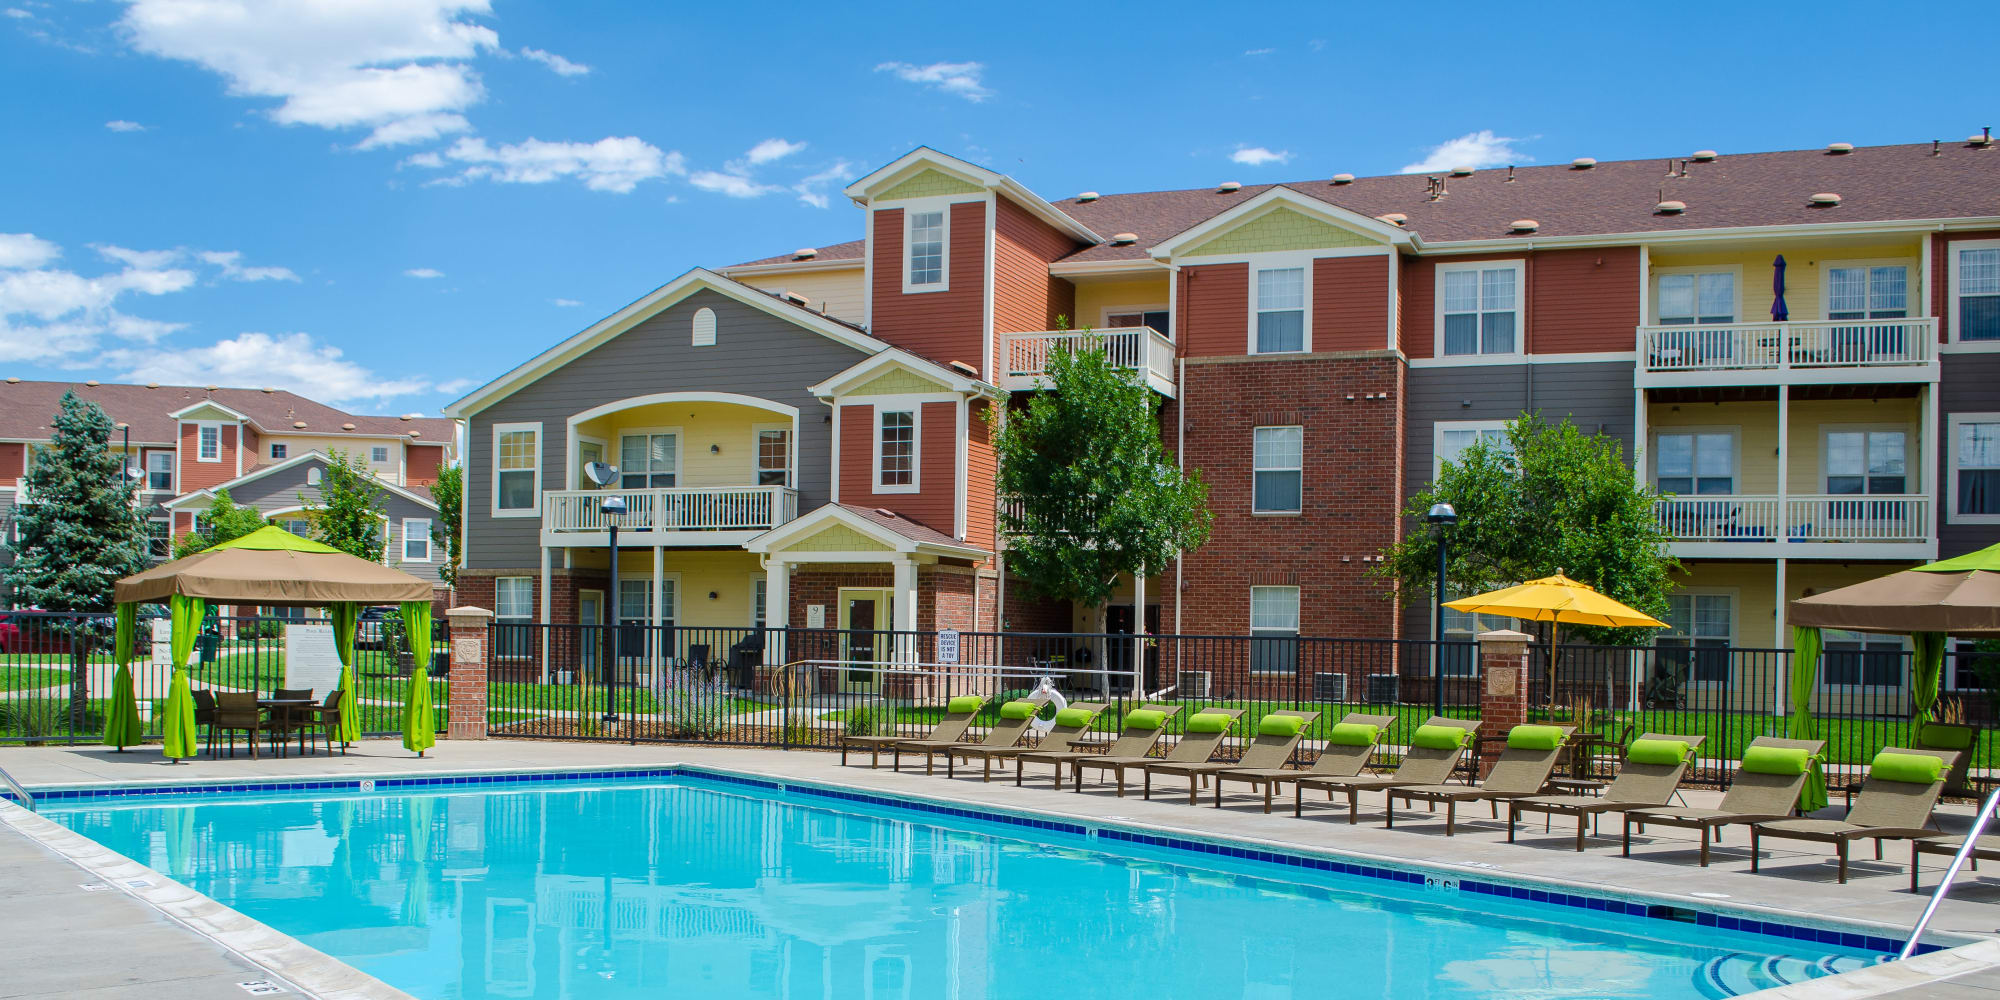 Apartments at Bear Valley Park in Denver, Colorado